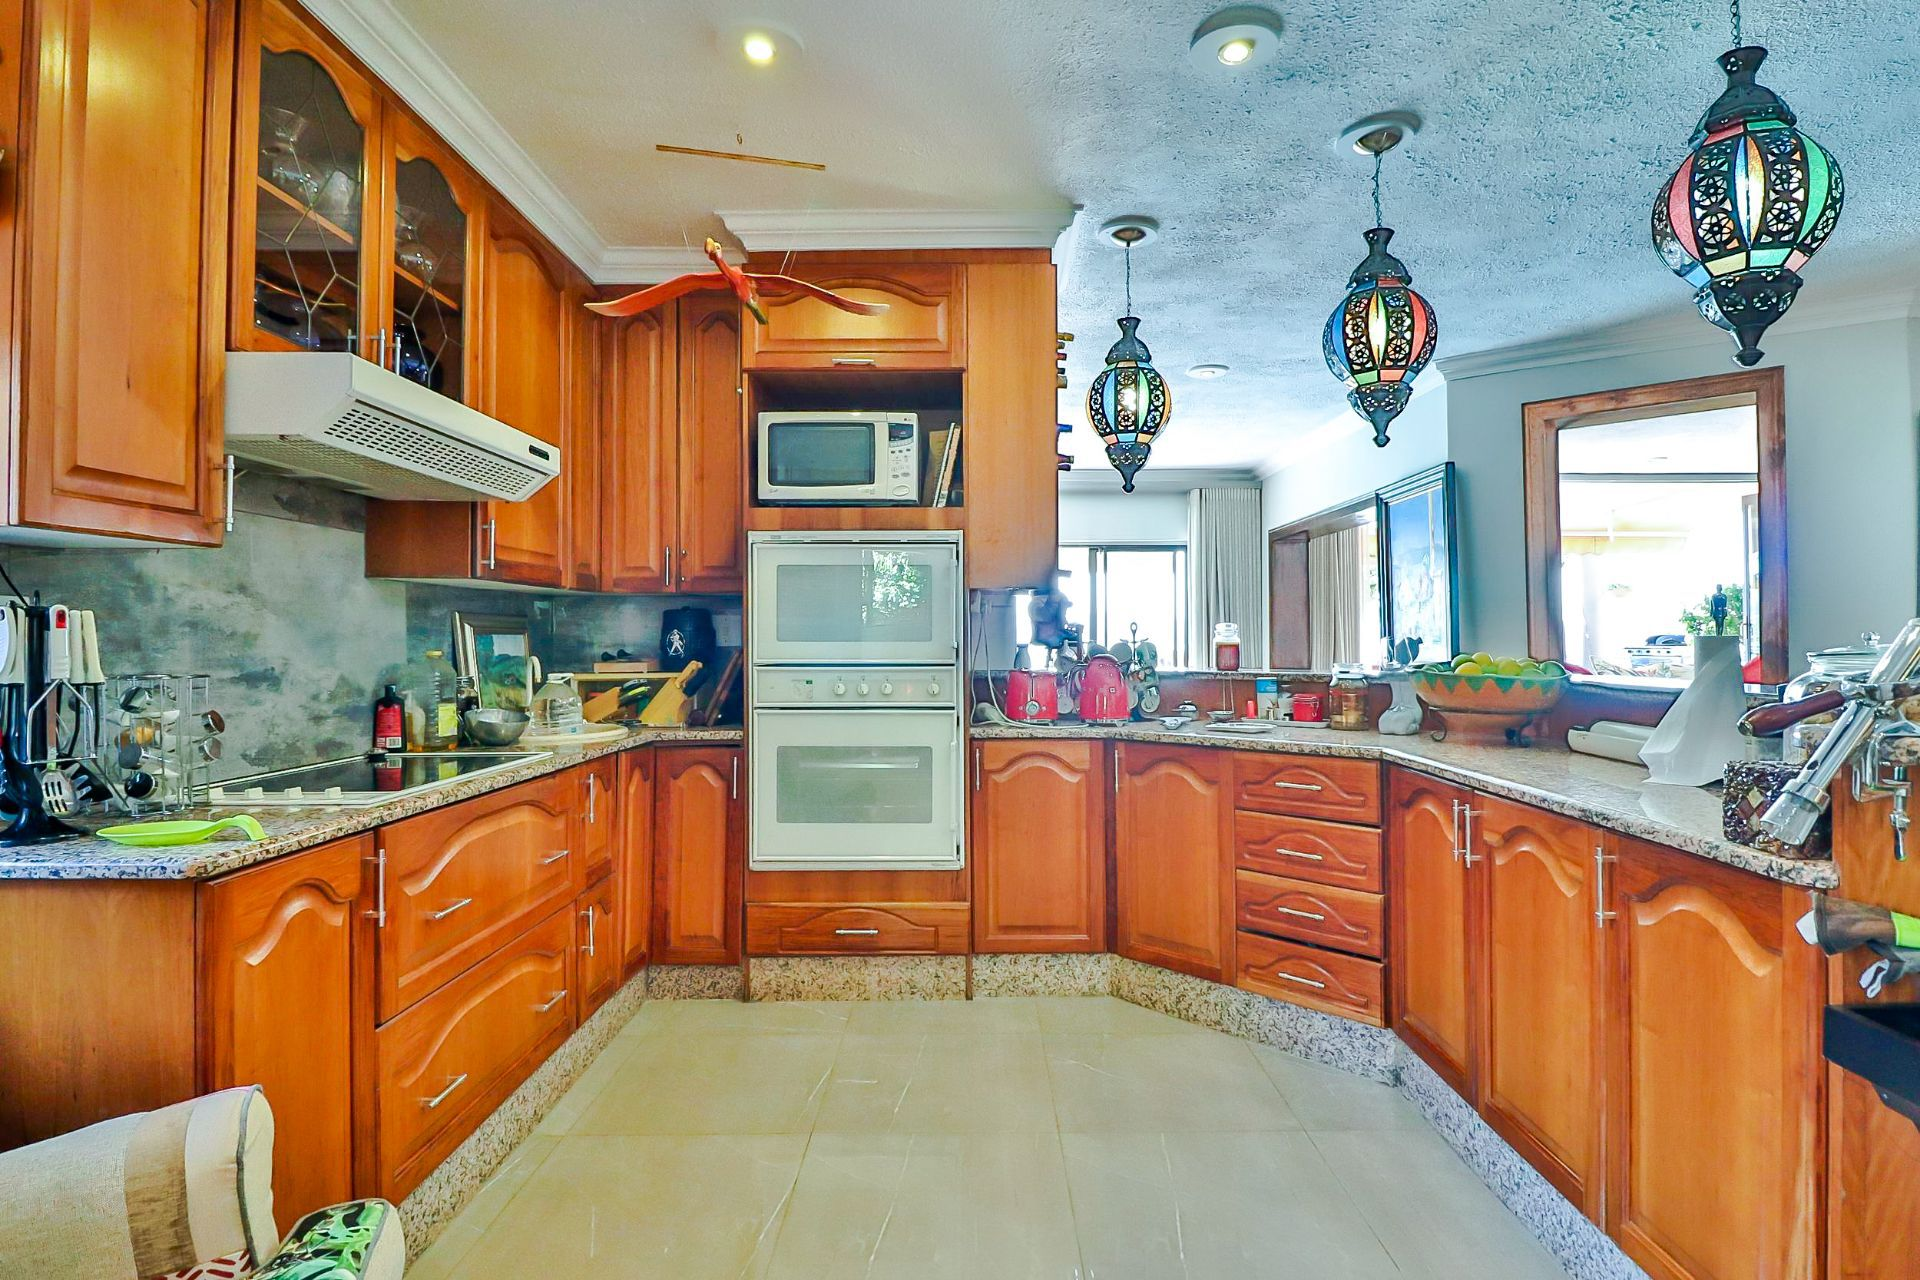 House in Kosmos Village - Kitchen is really spacious and integrates with the other living space